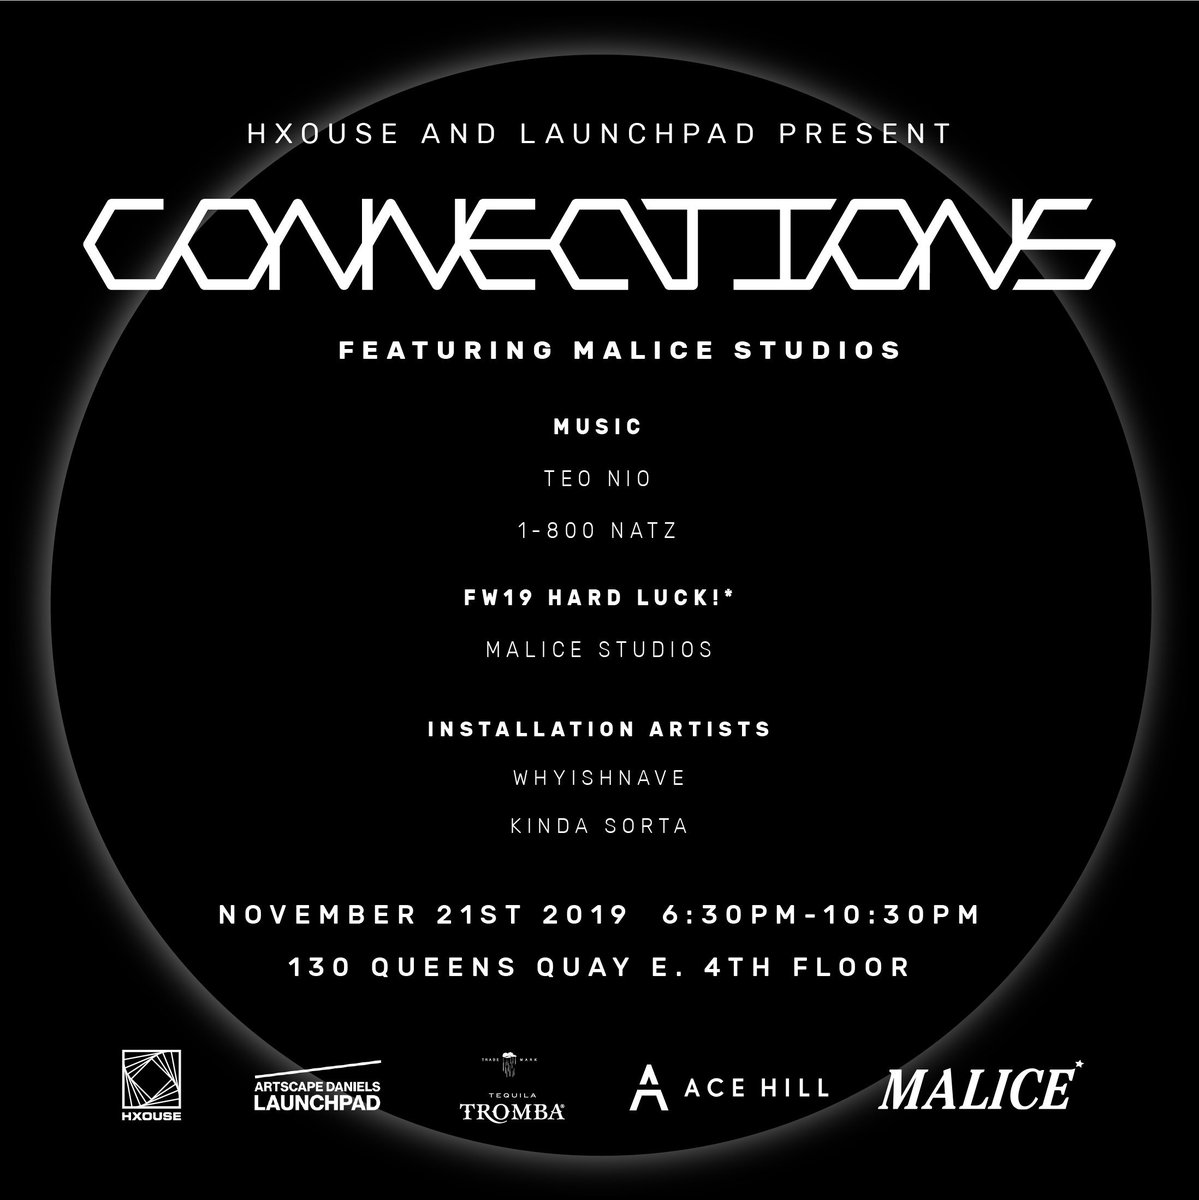 CONNECTIONS NOV 21 — TICKETS — HXOUSE.COM/EVENTS